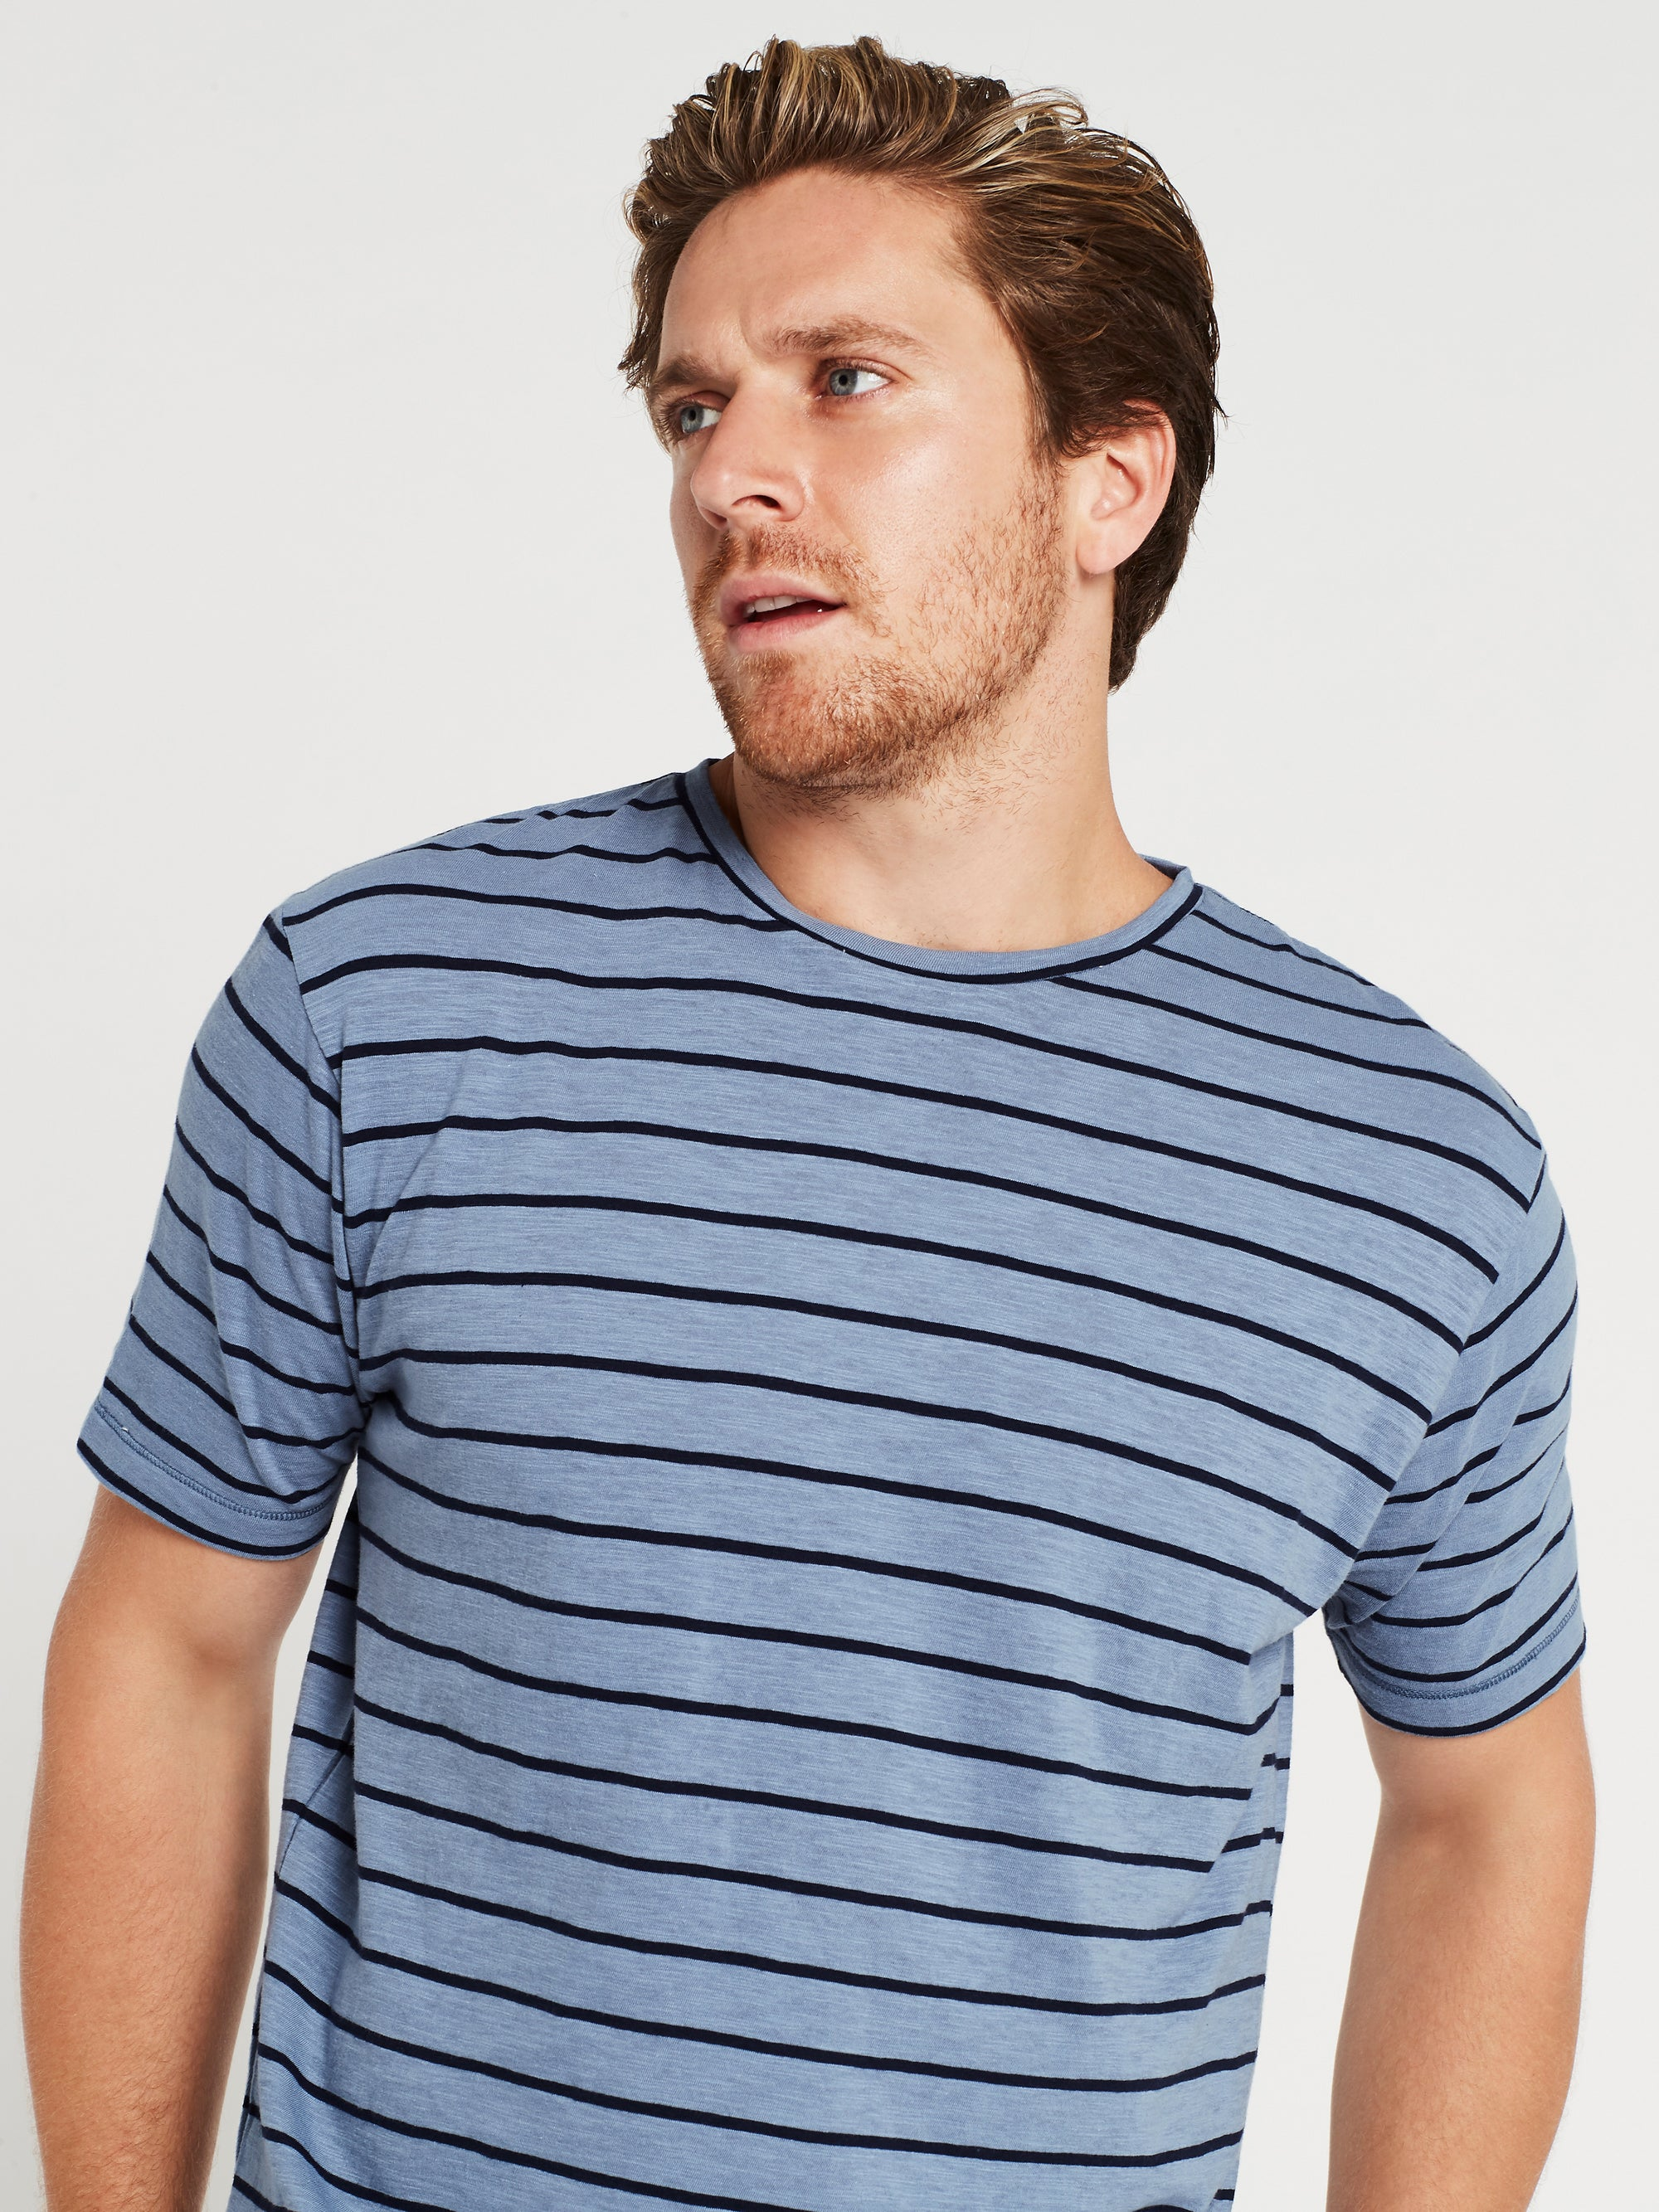 Liam Crew Neck T-Shirt in Steel & Navy Stripe